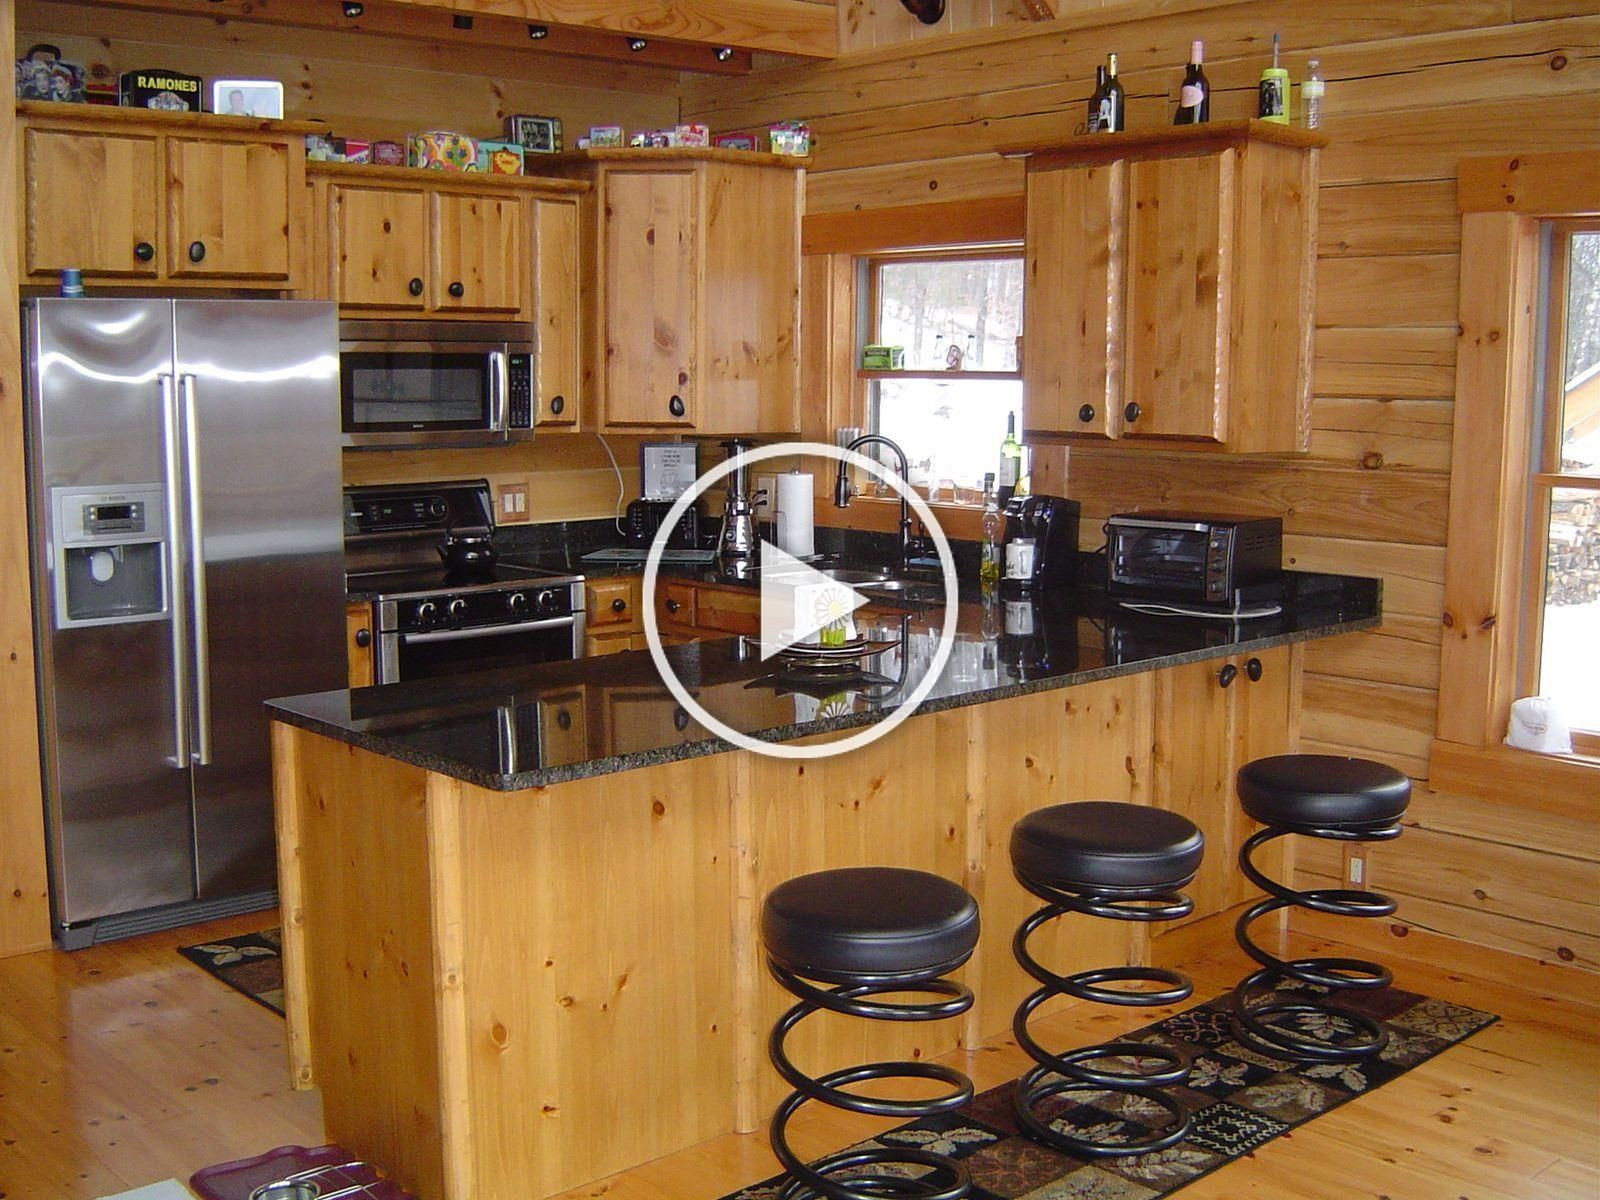 Rustic Pine Kitchen Cabinets For Sale Kitchencabinet Cabinets Kitchen Kitchencabinet Pin In 2020 Kitchen Design Small Rustic Kitchen Cabinets Kitchen Remodel Small